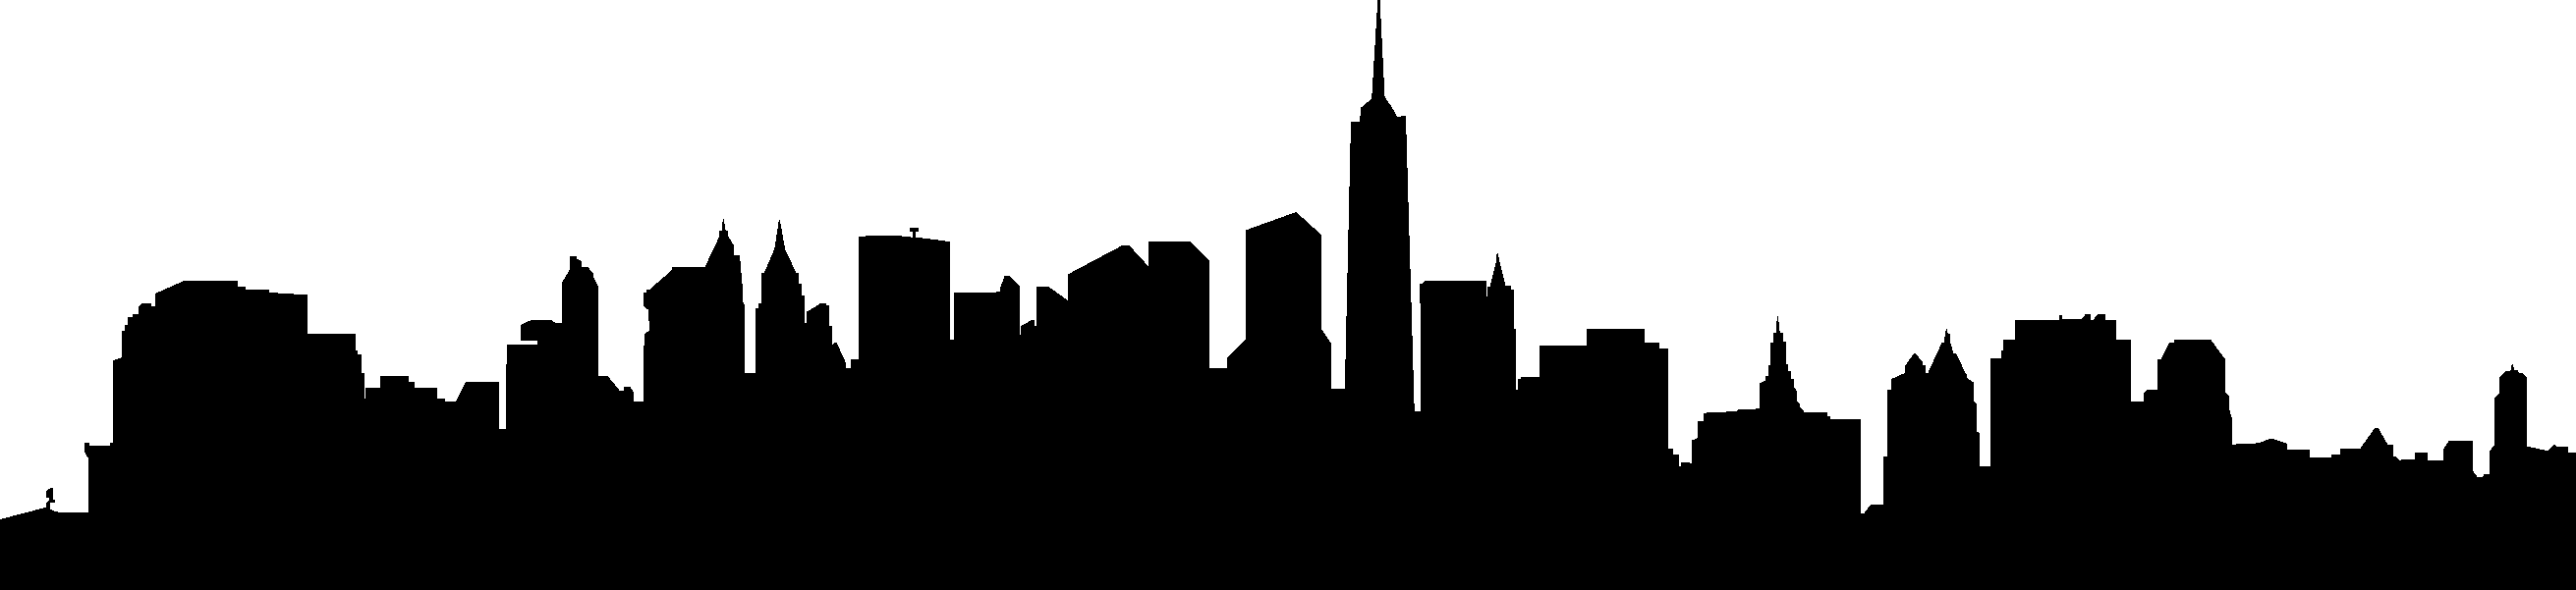 2622x601 City Skyline Silhouette 02 Vector Eps Free Download, Logo, Icons